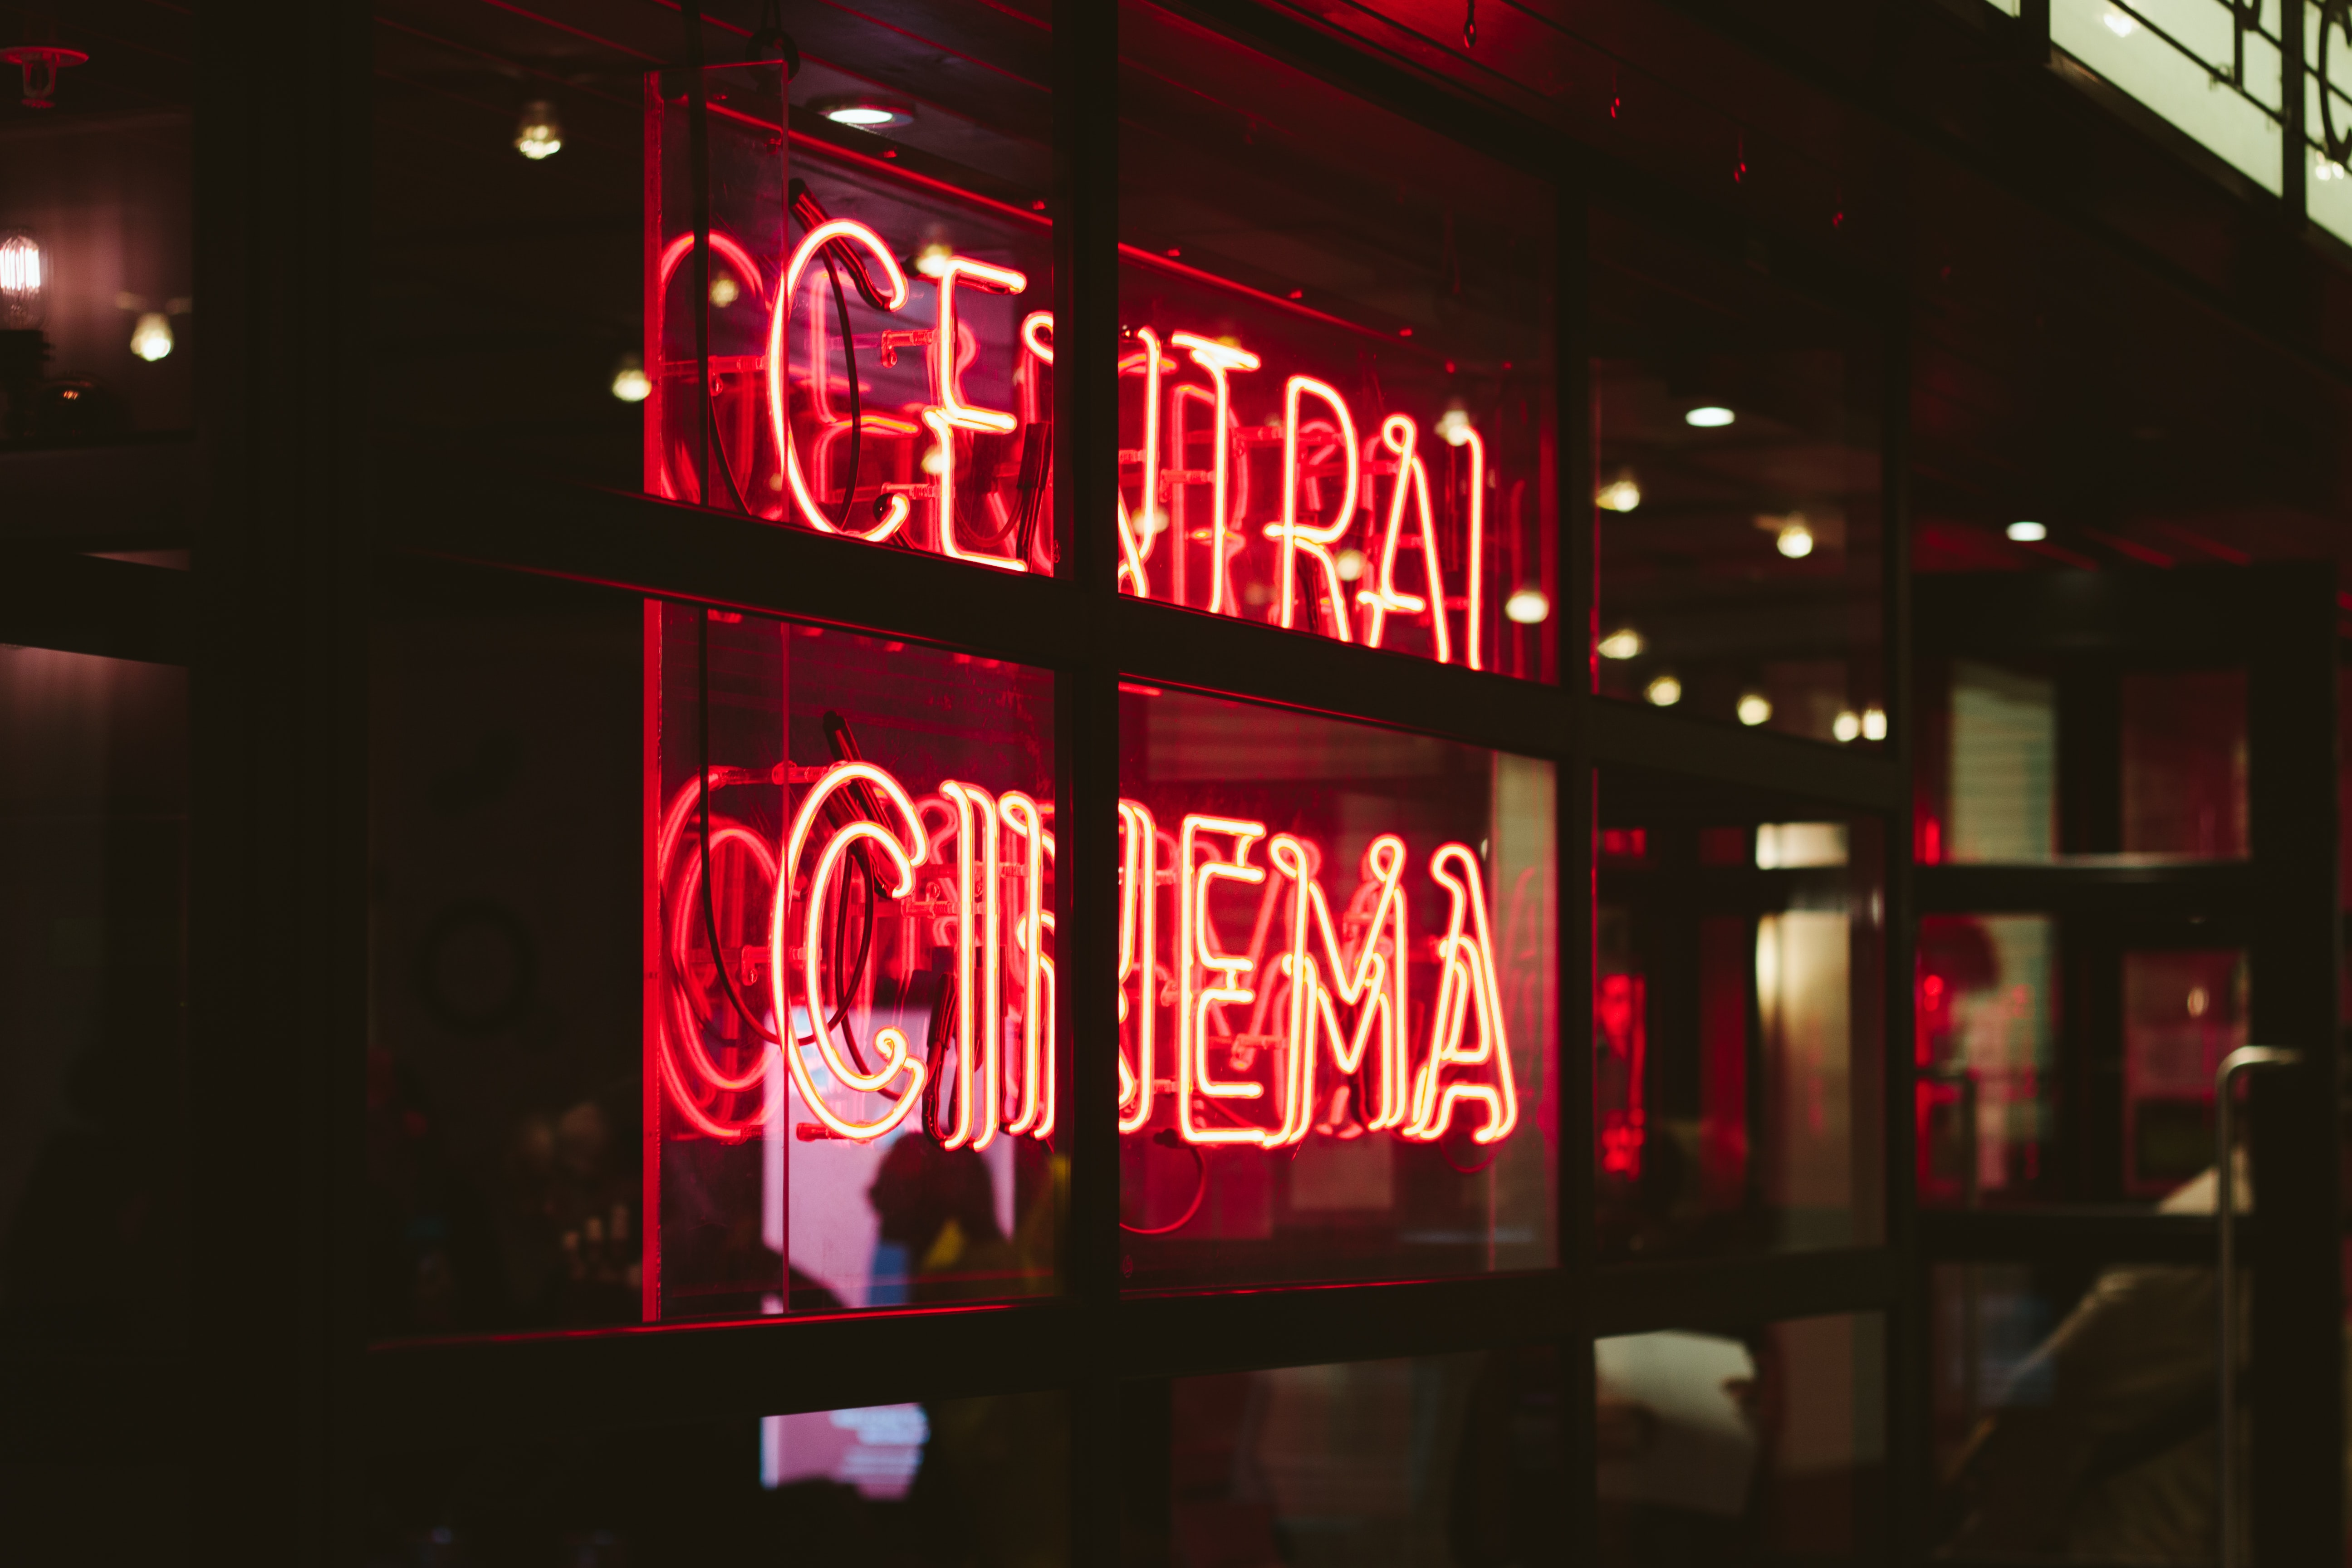 turned on central cinema neon sign on wall